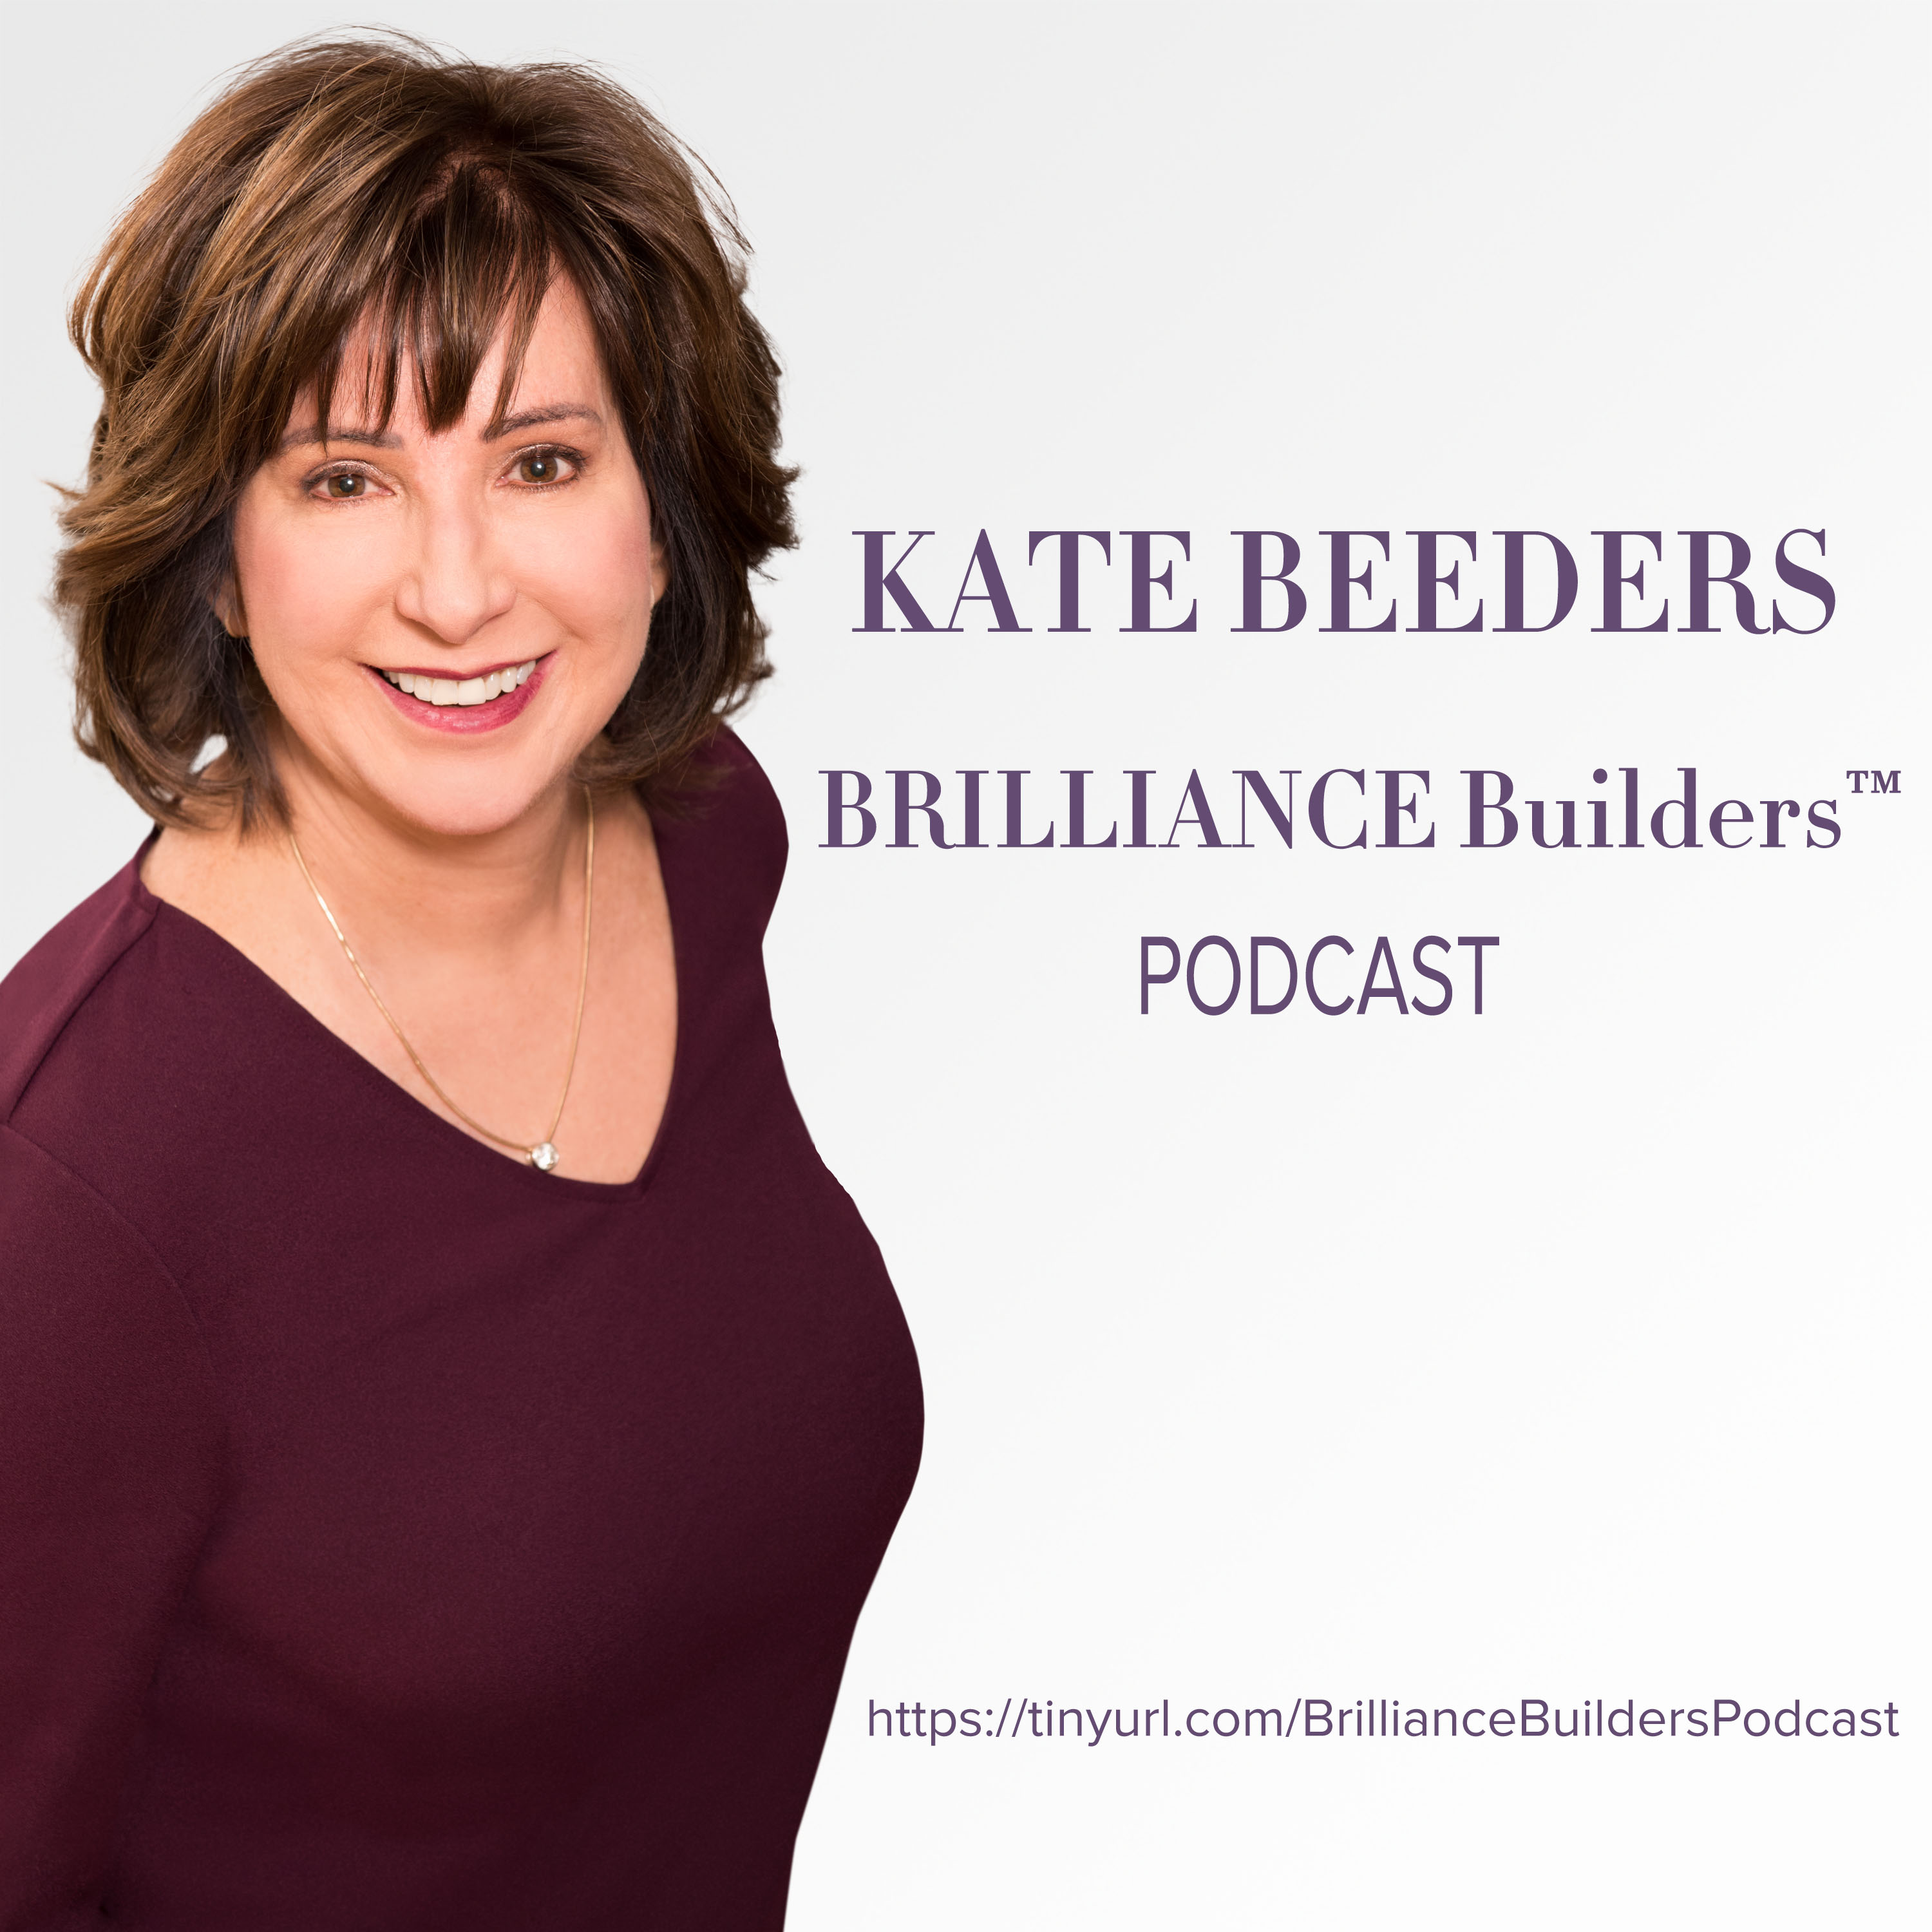 BRILLIANCE Builders™ Live by Kate Beeders